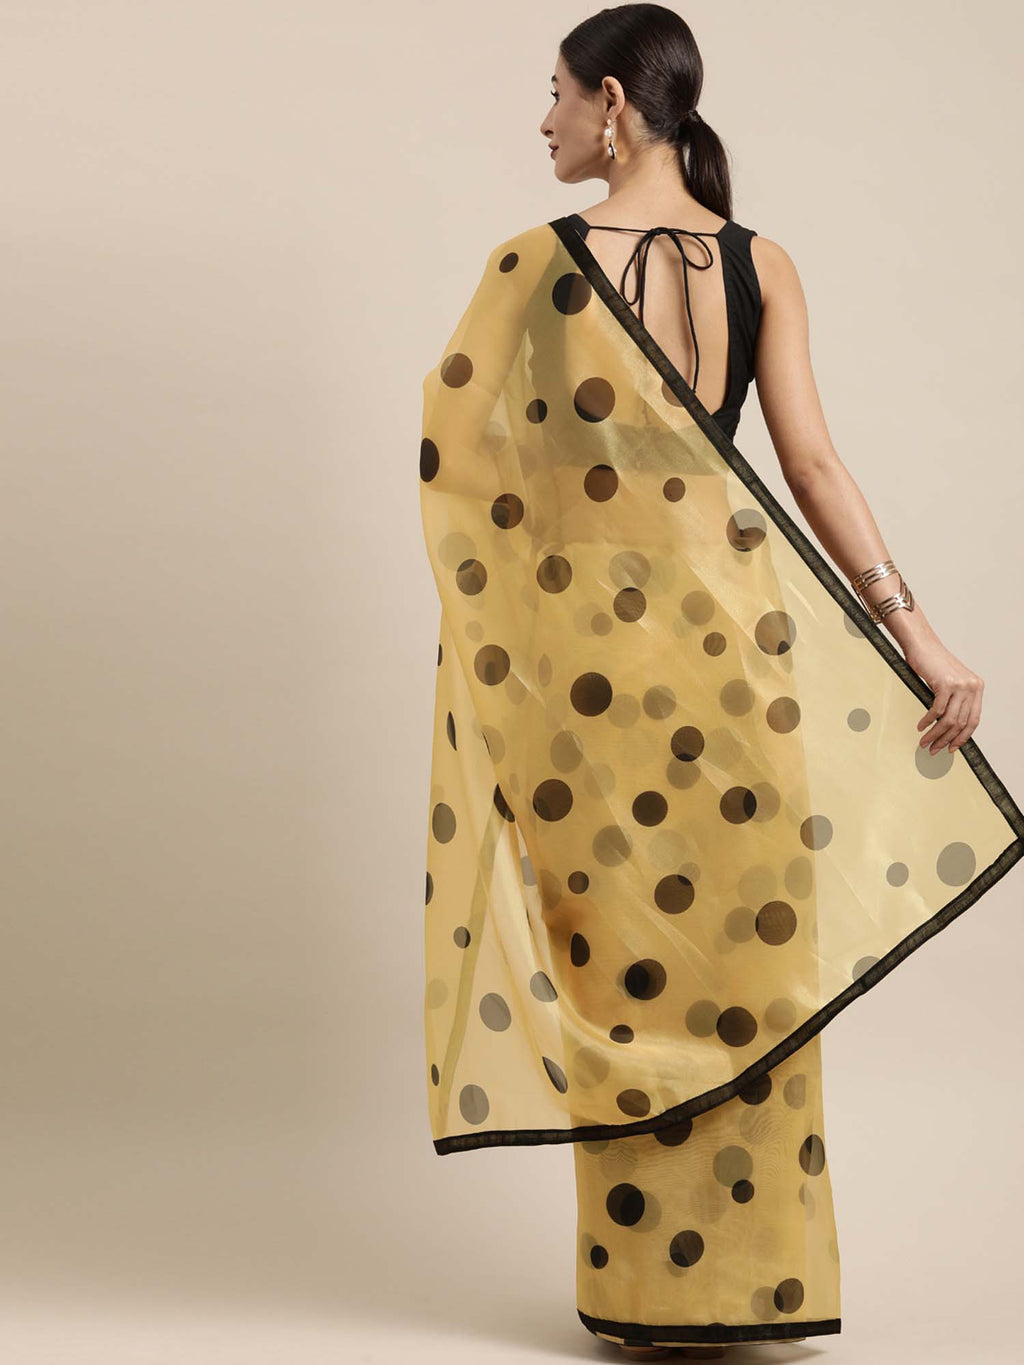 Yellow and Black Color Organza Saree With Geometric Prints - Riviera Closet